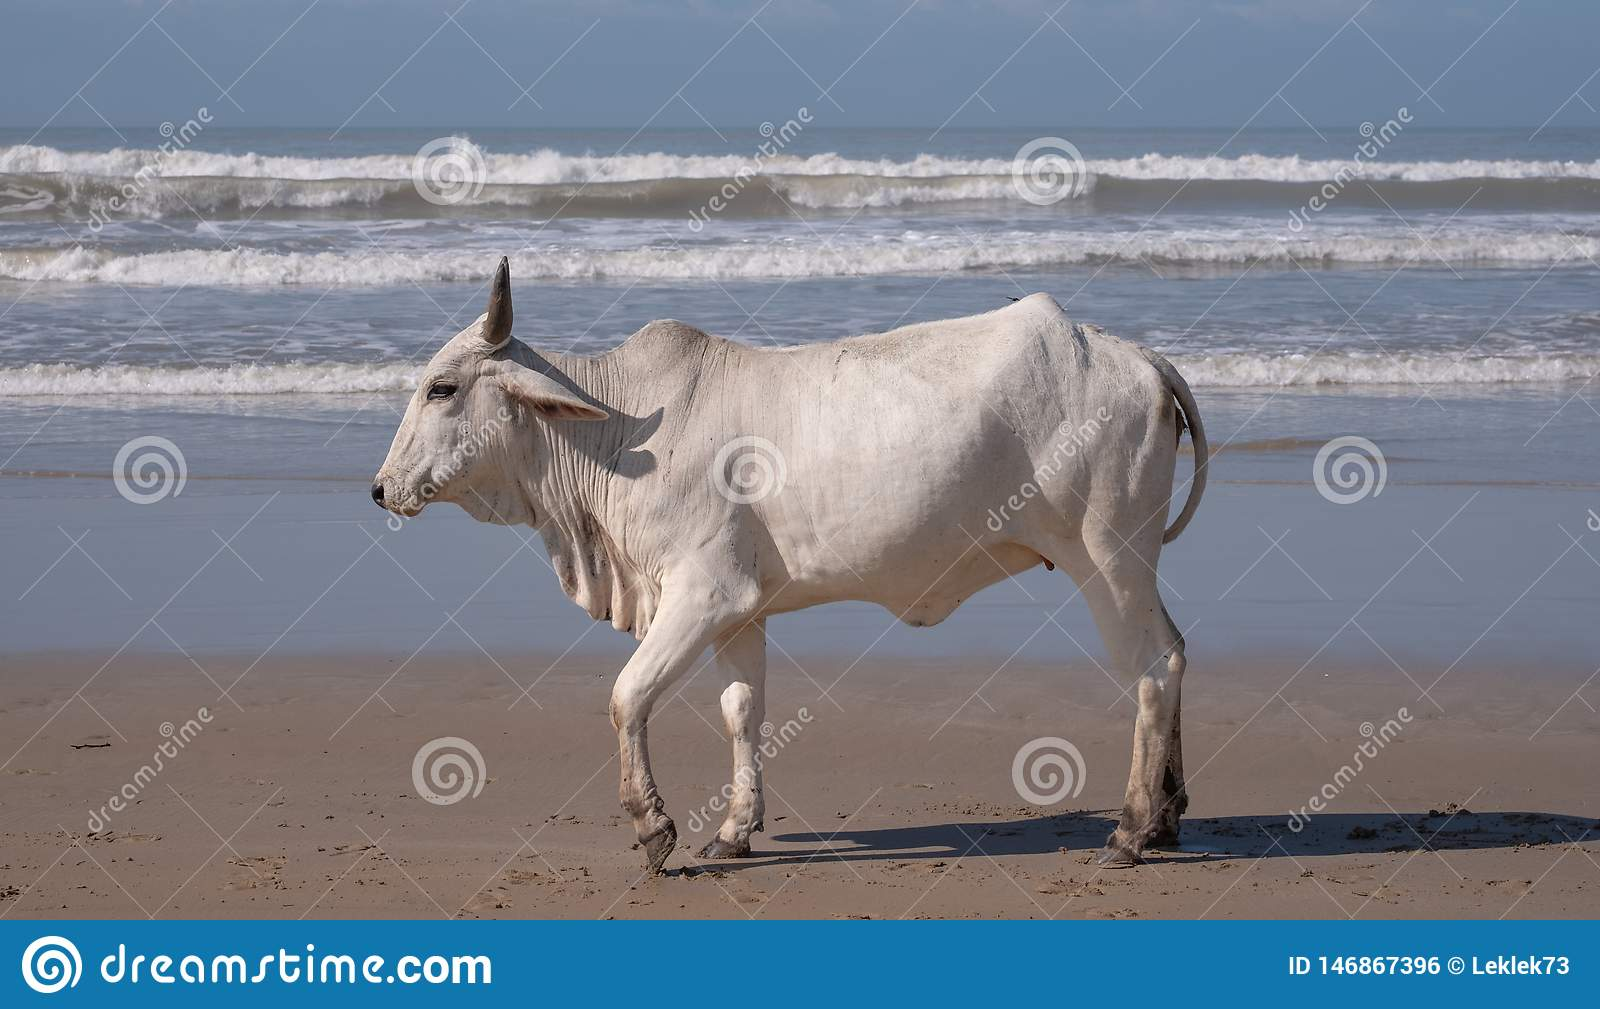 Cow on the sand at Second Beach, Port St Johns on the wild coast in Transkei, South Africa